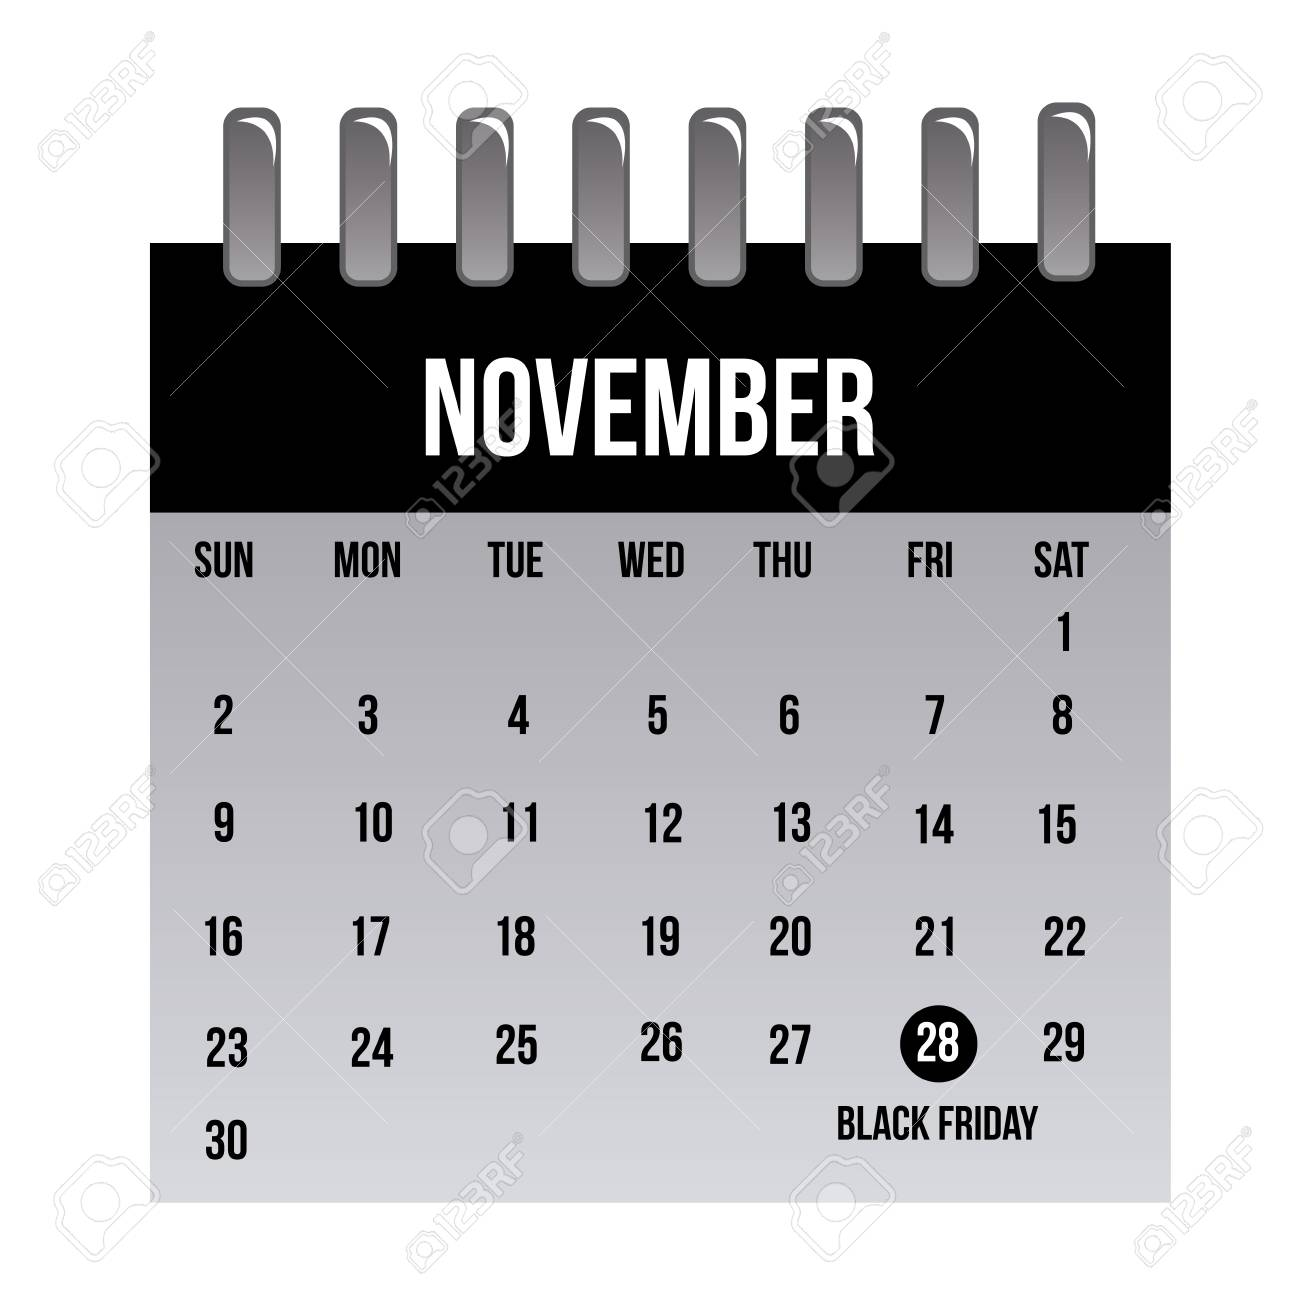 An Isolated Calendar With The Black Friday Date Marked Royalty Free Cliparts Vectors And Stock Illustration Image 33779143